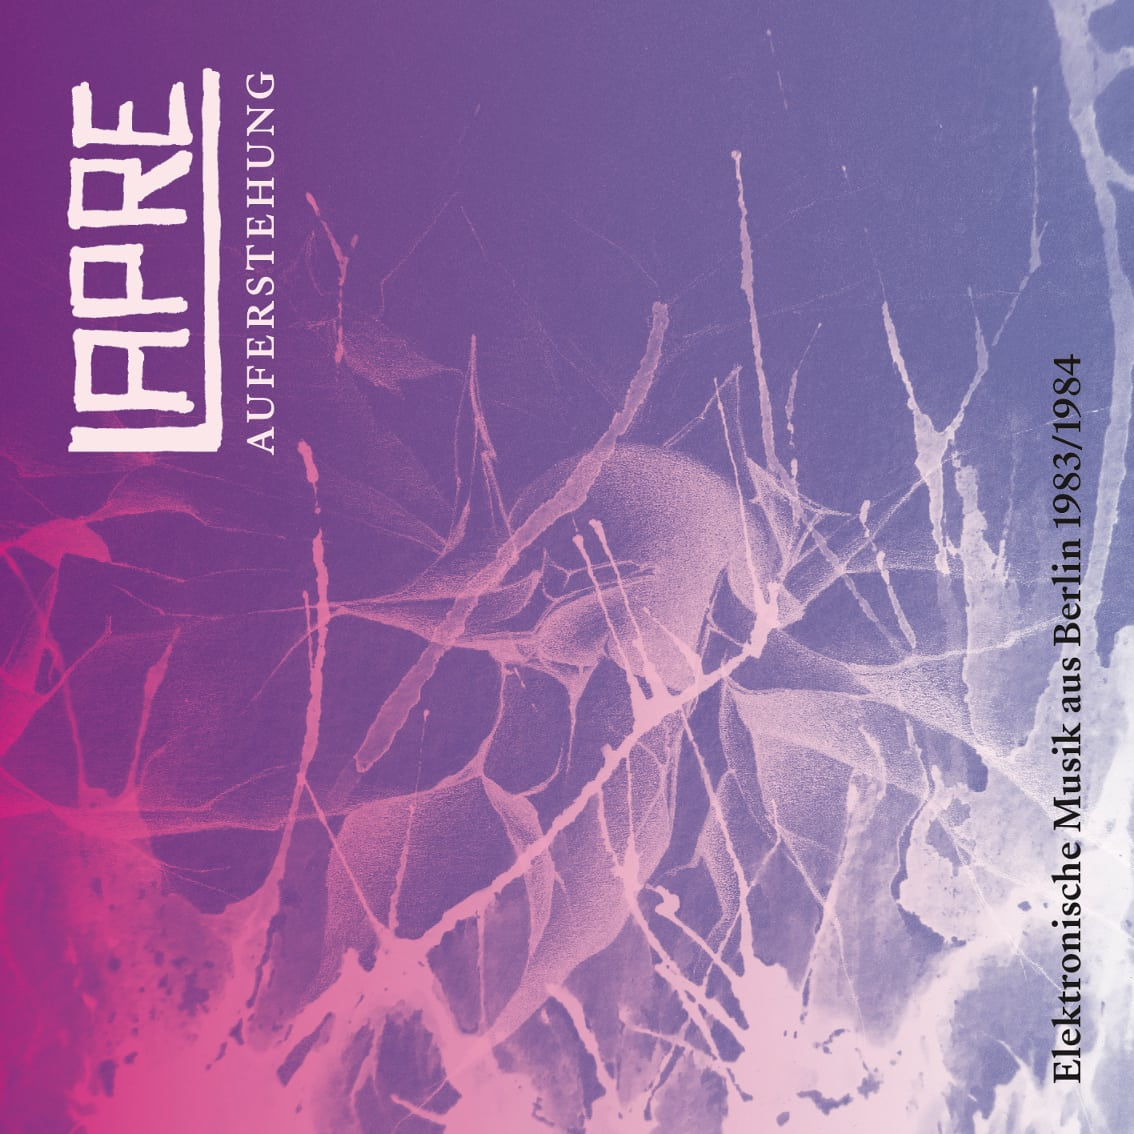 Bureau B releases archive material by Lapre aka Rudolf Langer (Tyndall) and guitarist Peter Preuß